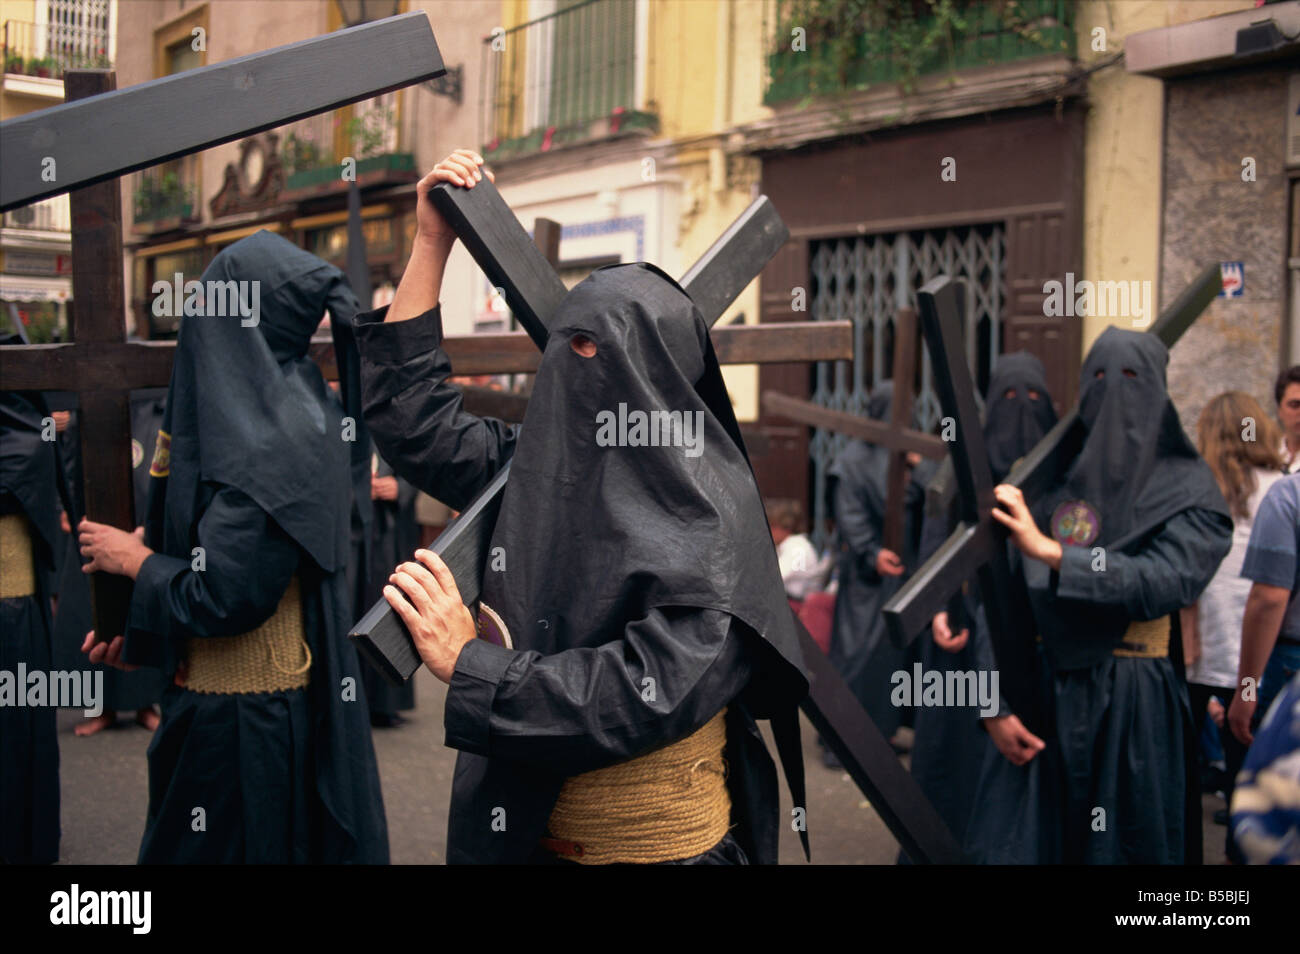 Penitents bearing crosses in procession Holy Week Semana Santa Seville Andalucia Sapin Europe - Stock Image